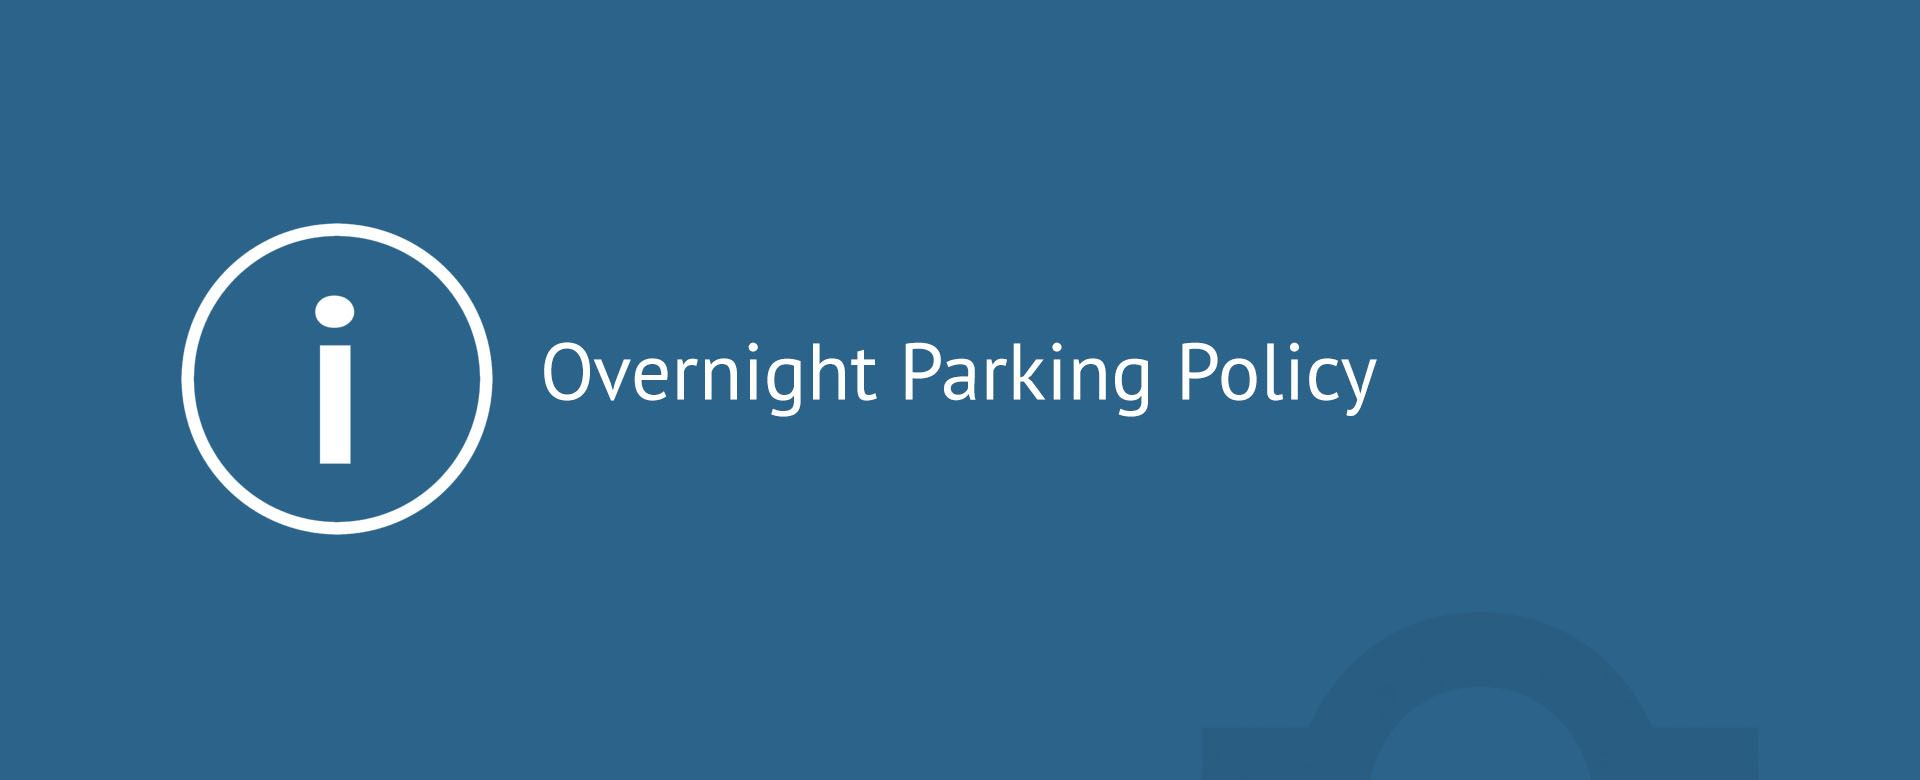 Overnight Parking Policy